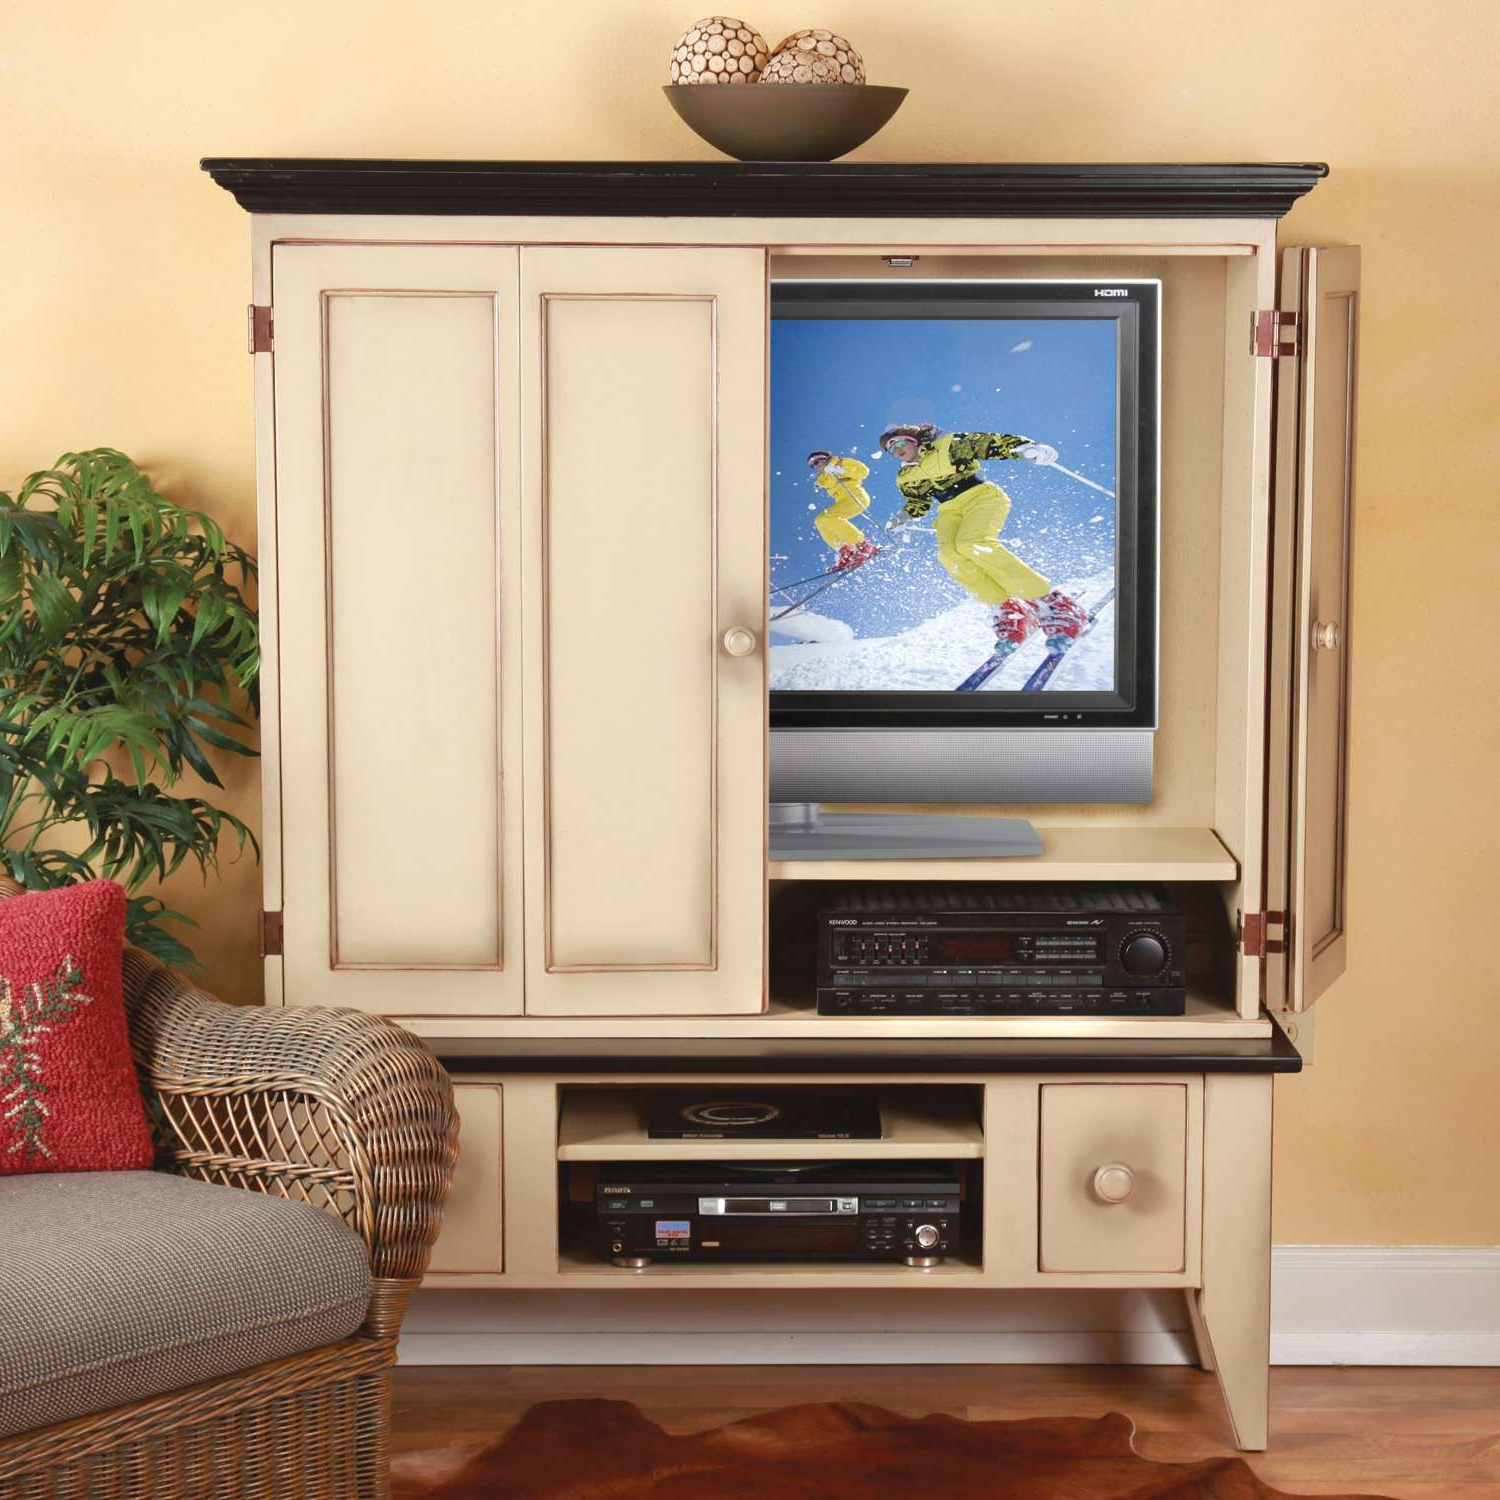 Widely Used Enclosed Tv Cabinets With Doors – Image Cabinets And Shower Mandra For Enclosed Tv Cabinets With Doors (Gallery 2 of 20)